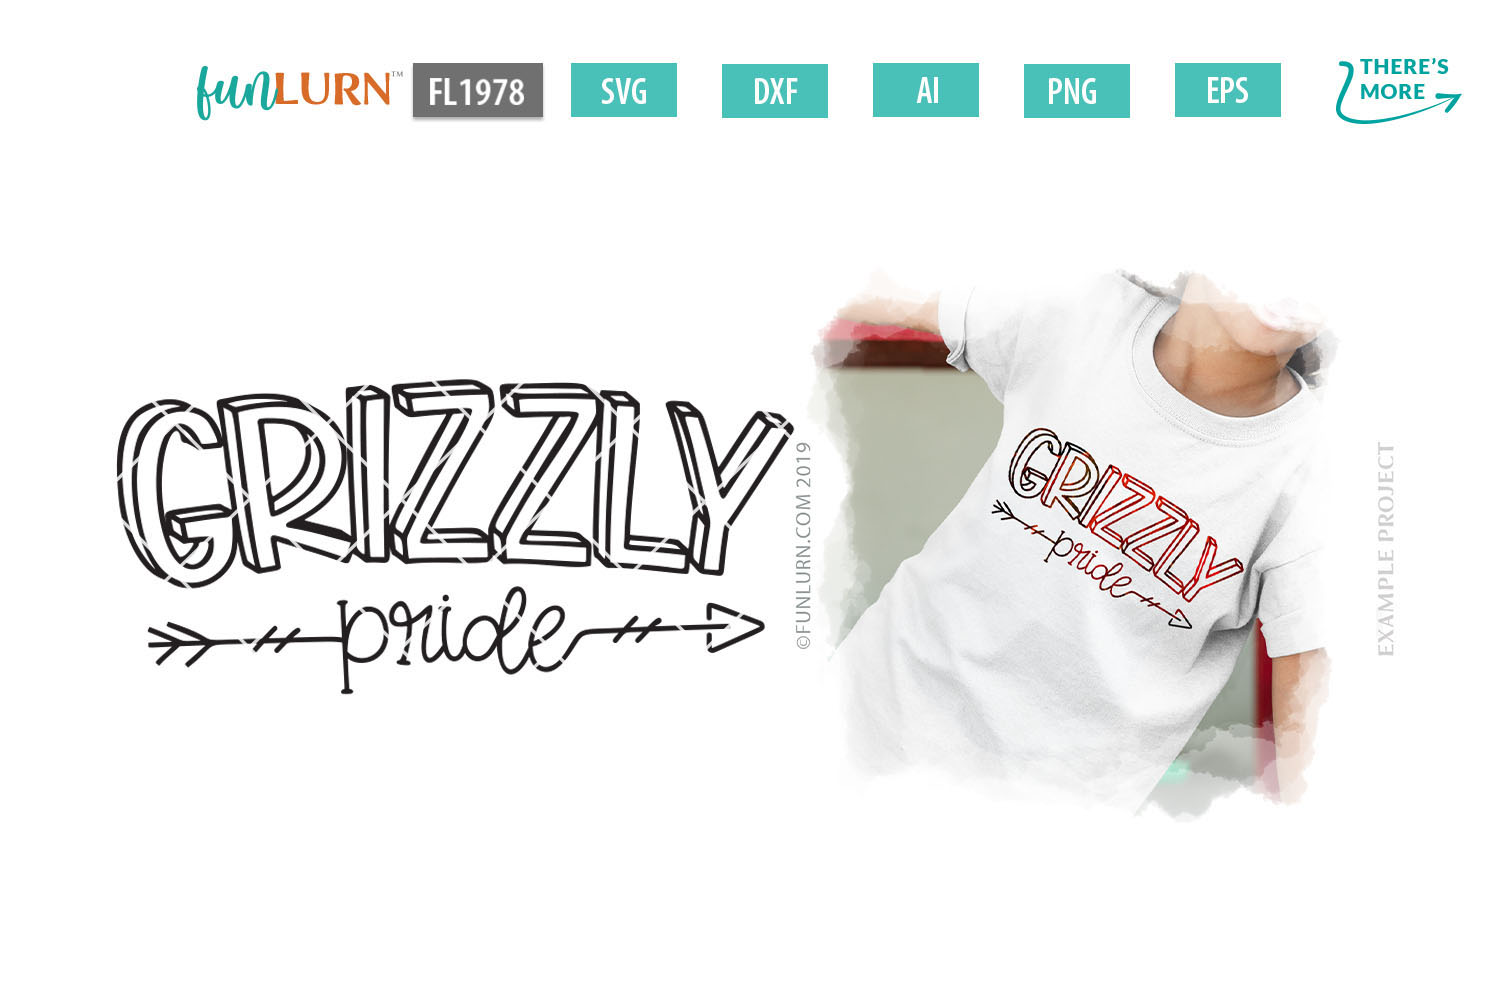 Grizzly Pride Team SVG Cut File example image 1